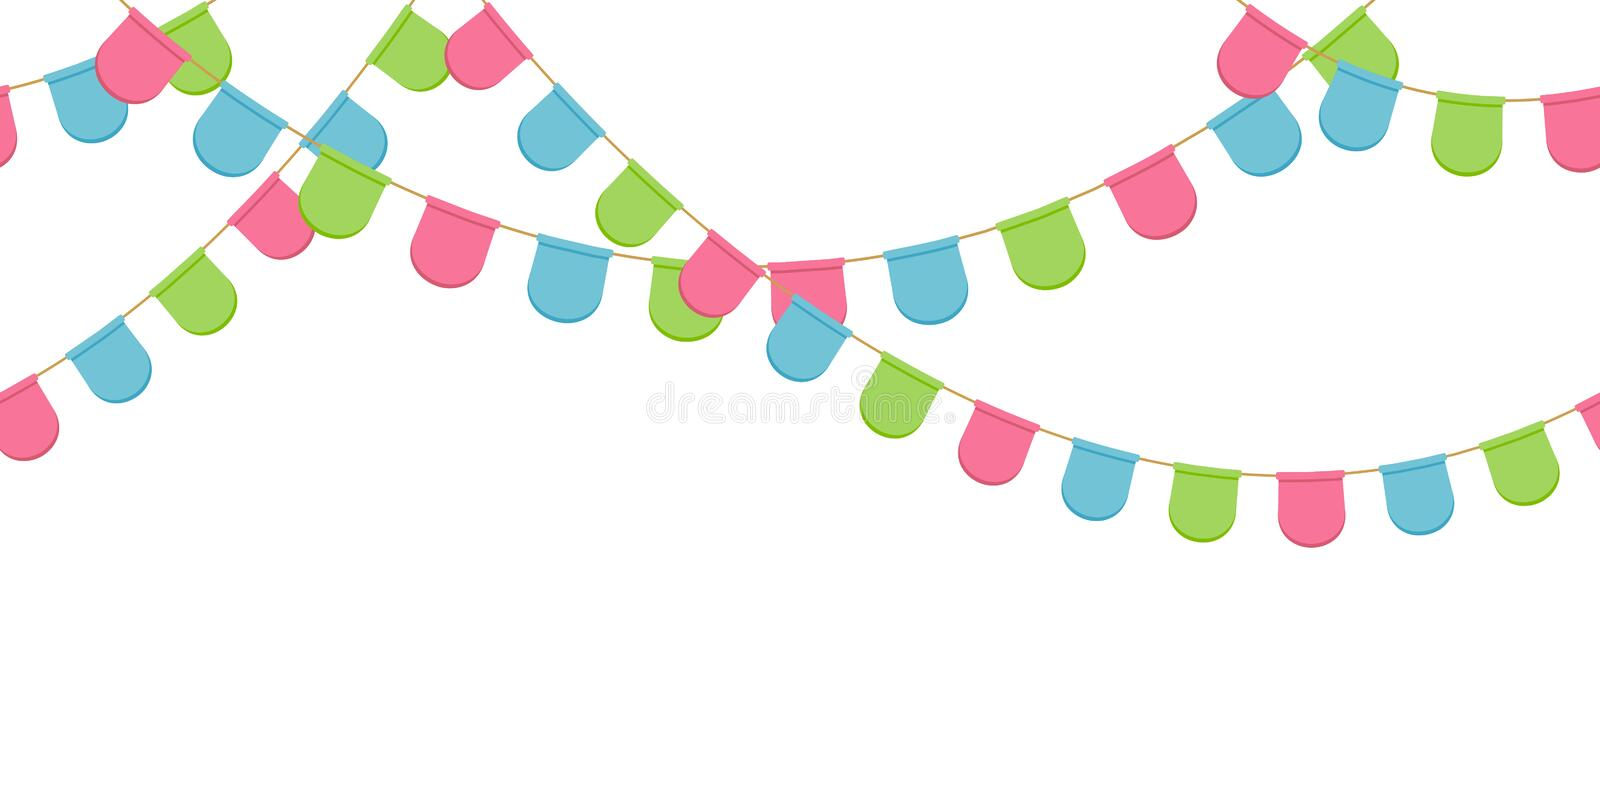 Seamless garland with celebration flags chain, pink, blue, green rounded pennons without background, footer and banner. For decoration, eps 10 vector illustration